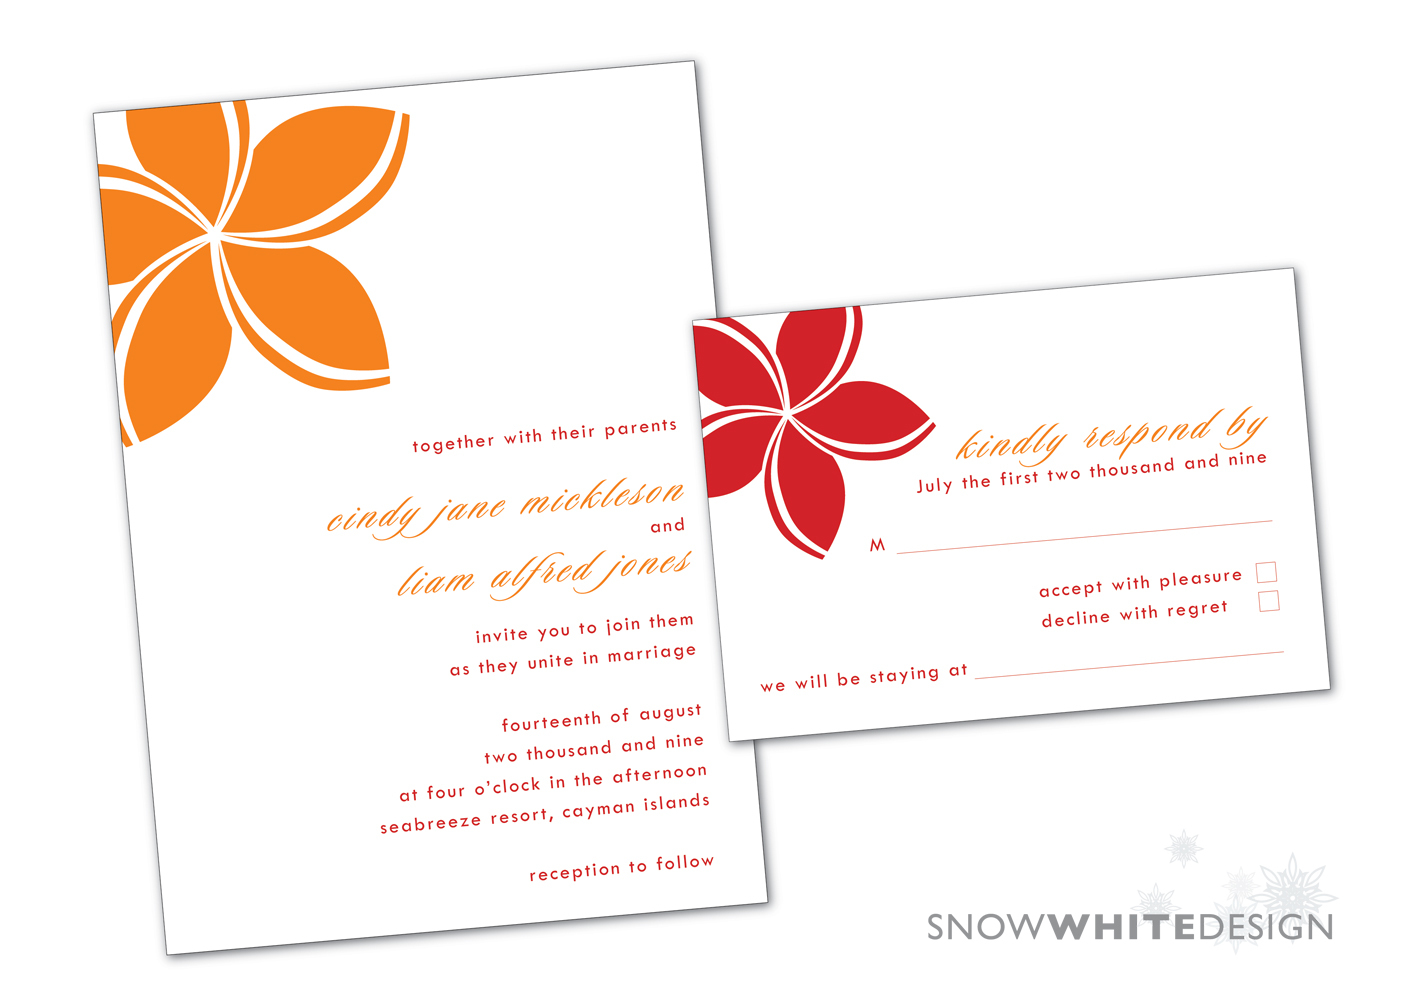 DIY, Flowers & Decor, Stationery, Destinations, white, orange, red, invitation, Beach, Beach Wedding Invitations, Invitations, Flower, Tropical, Destination, Rsvp, Design, Invite, Snow, Response, Snow white design, Frangipani